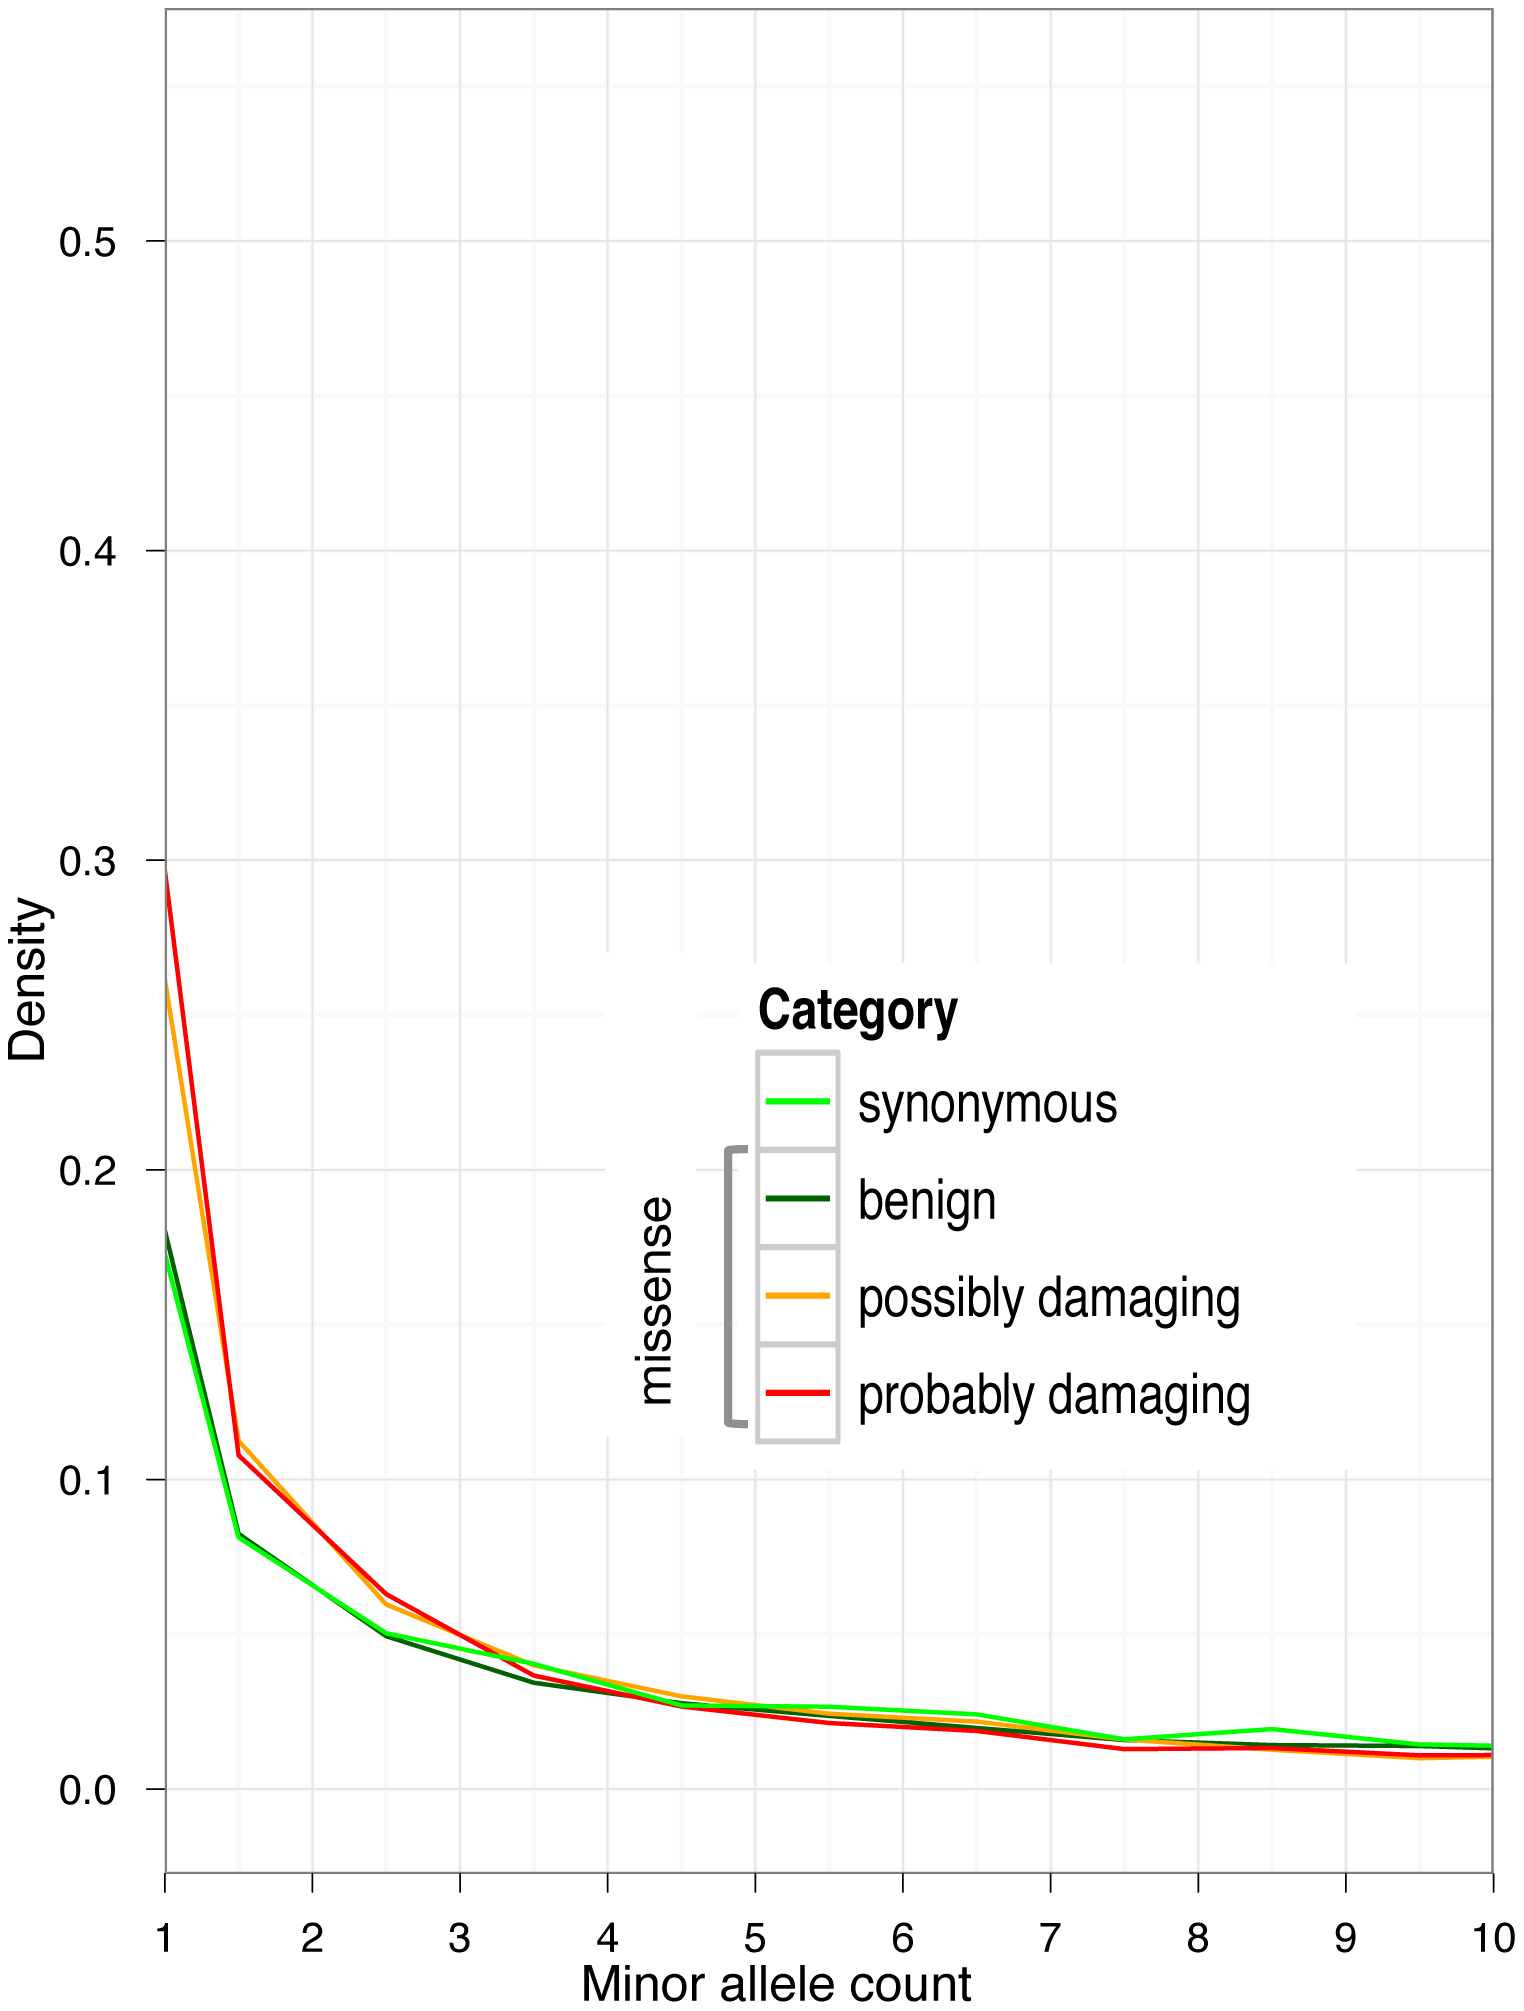 Allele frequency spectra in GoNL data, for synonymous alleles and non-synonymous alleles stratified by PolyPhen-2 functional predictions.